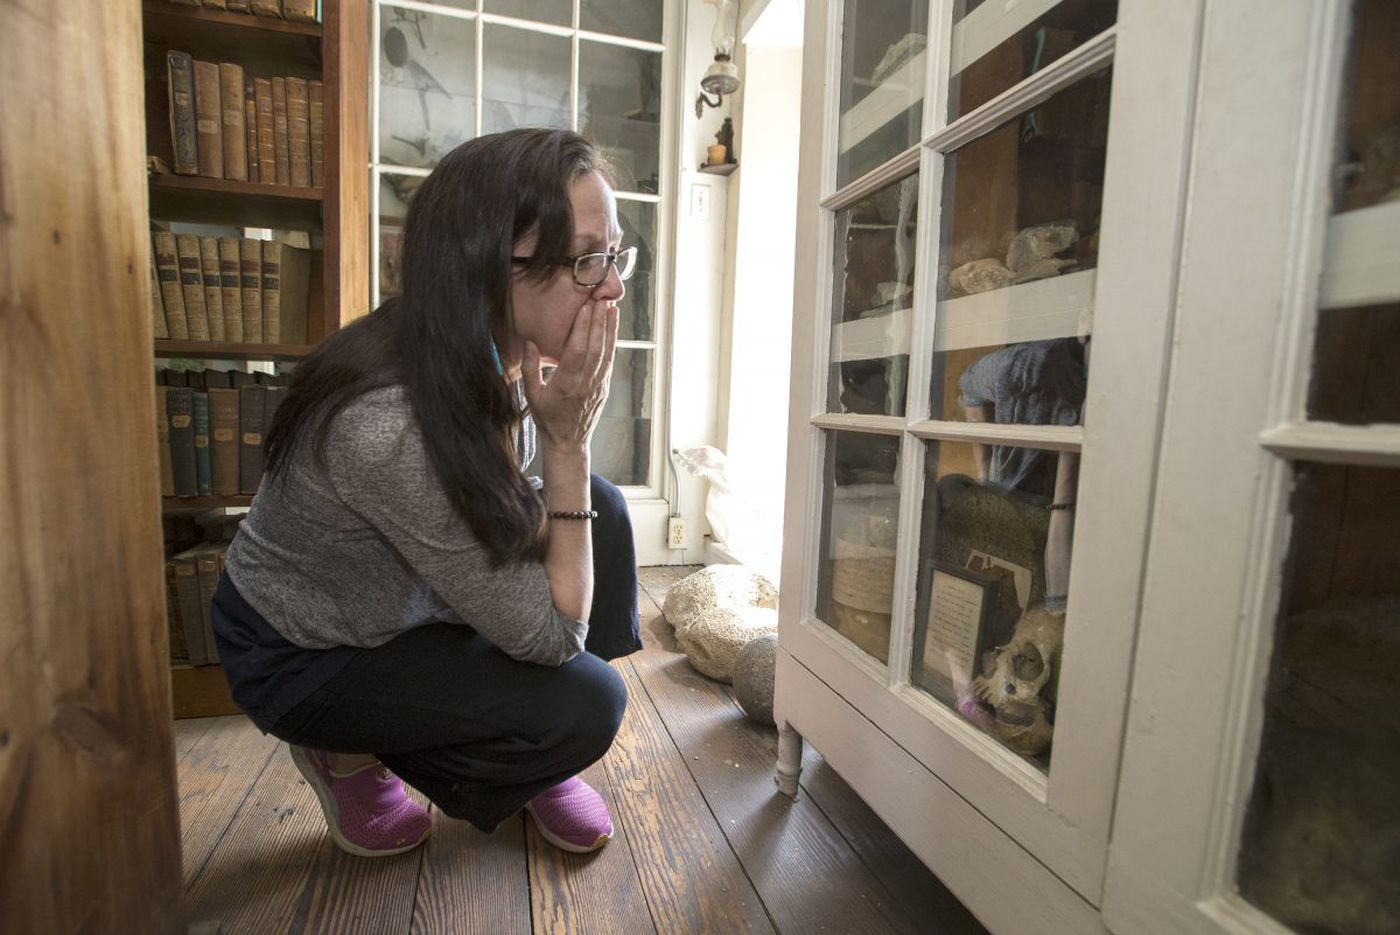 At Byberry Quaker library, a grim find: Native American remains in display case